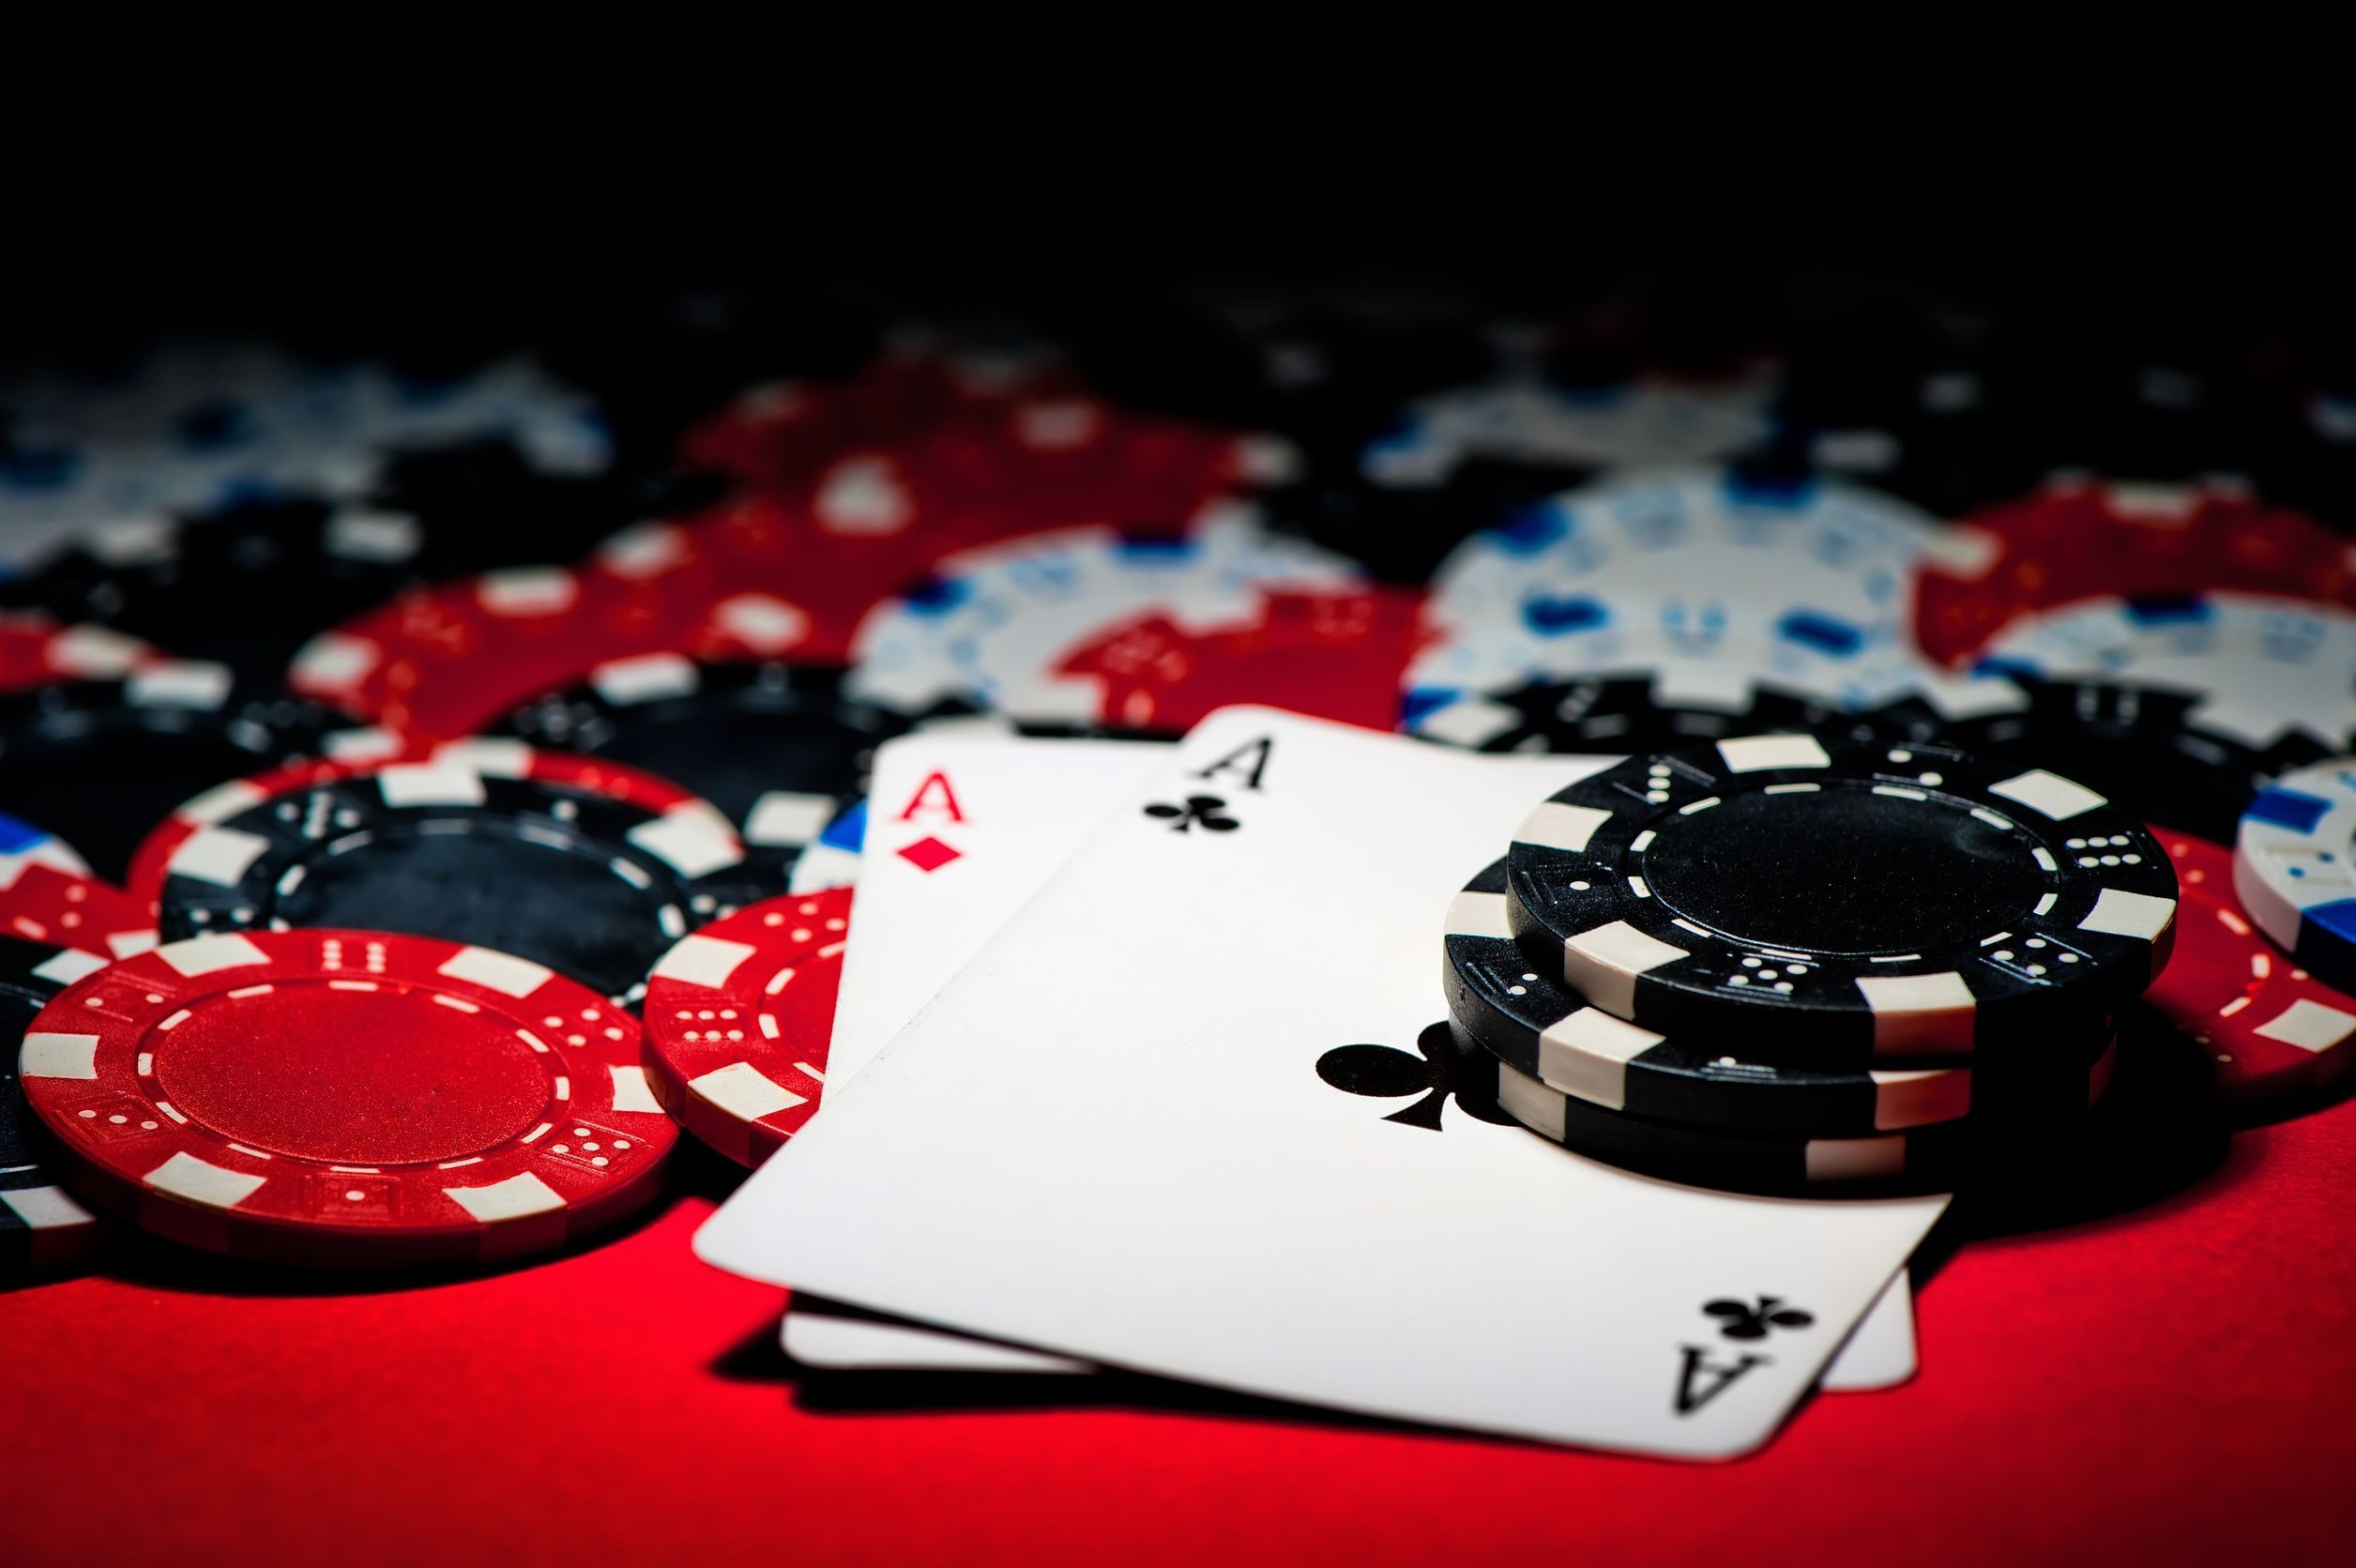 Tips to should followed to become an expert in poker games